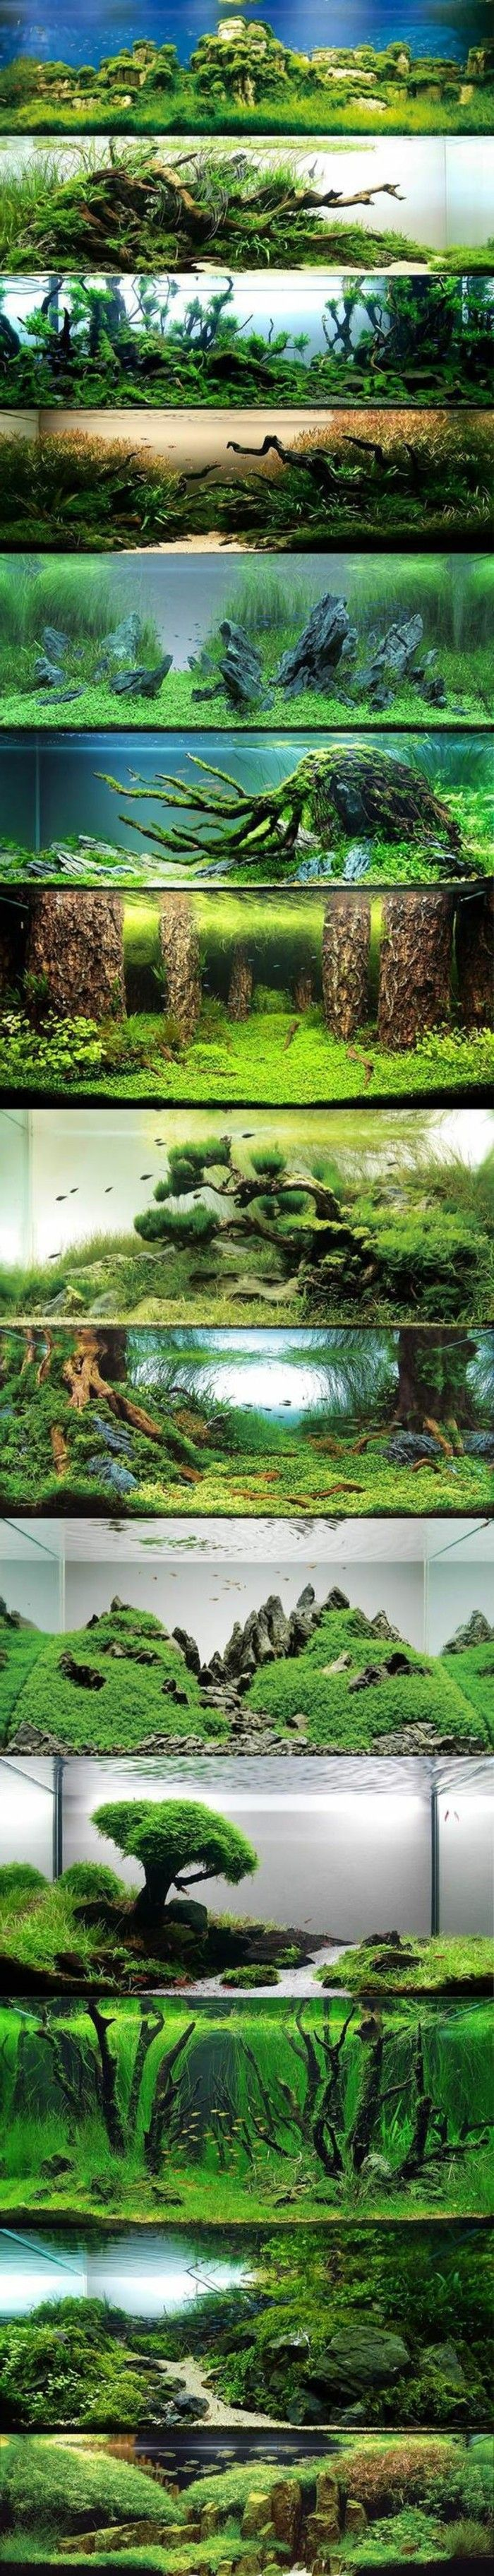 18 best aquascape diy images on Pinterest